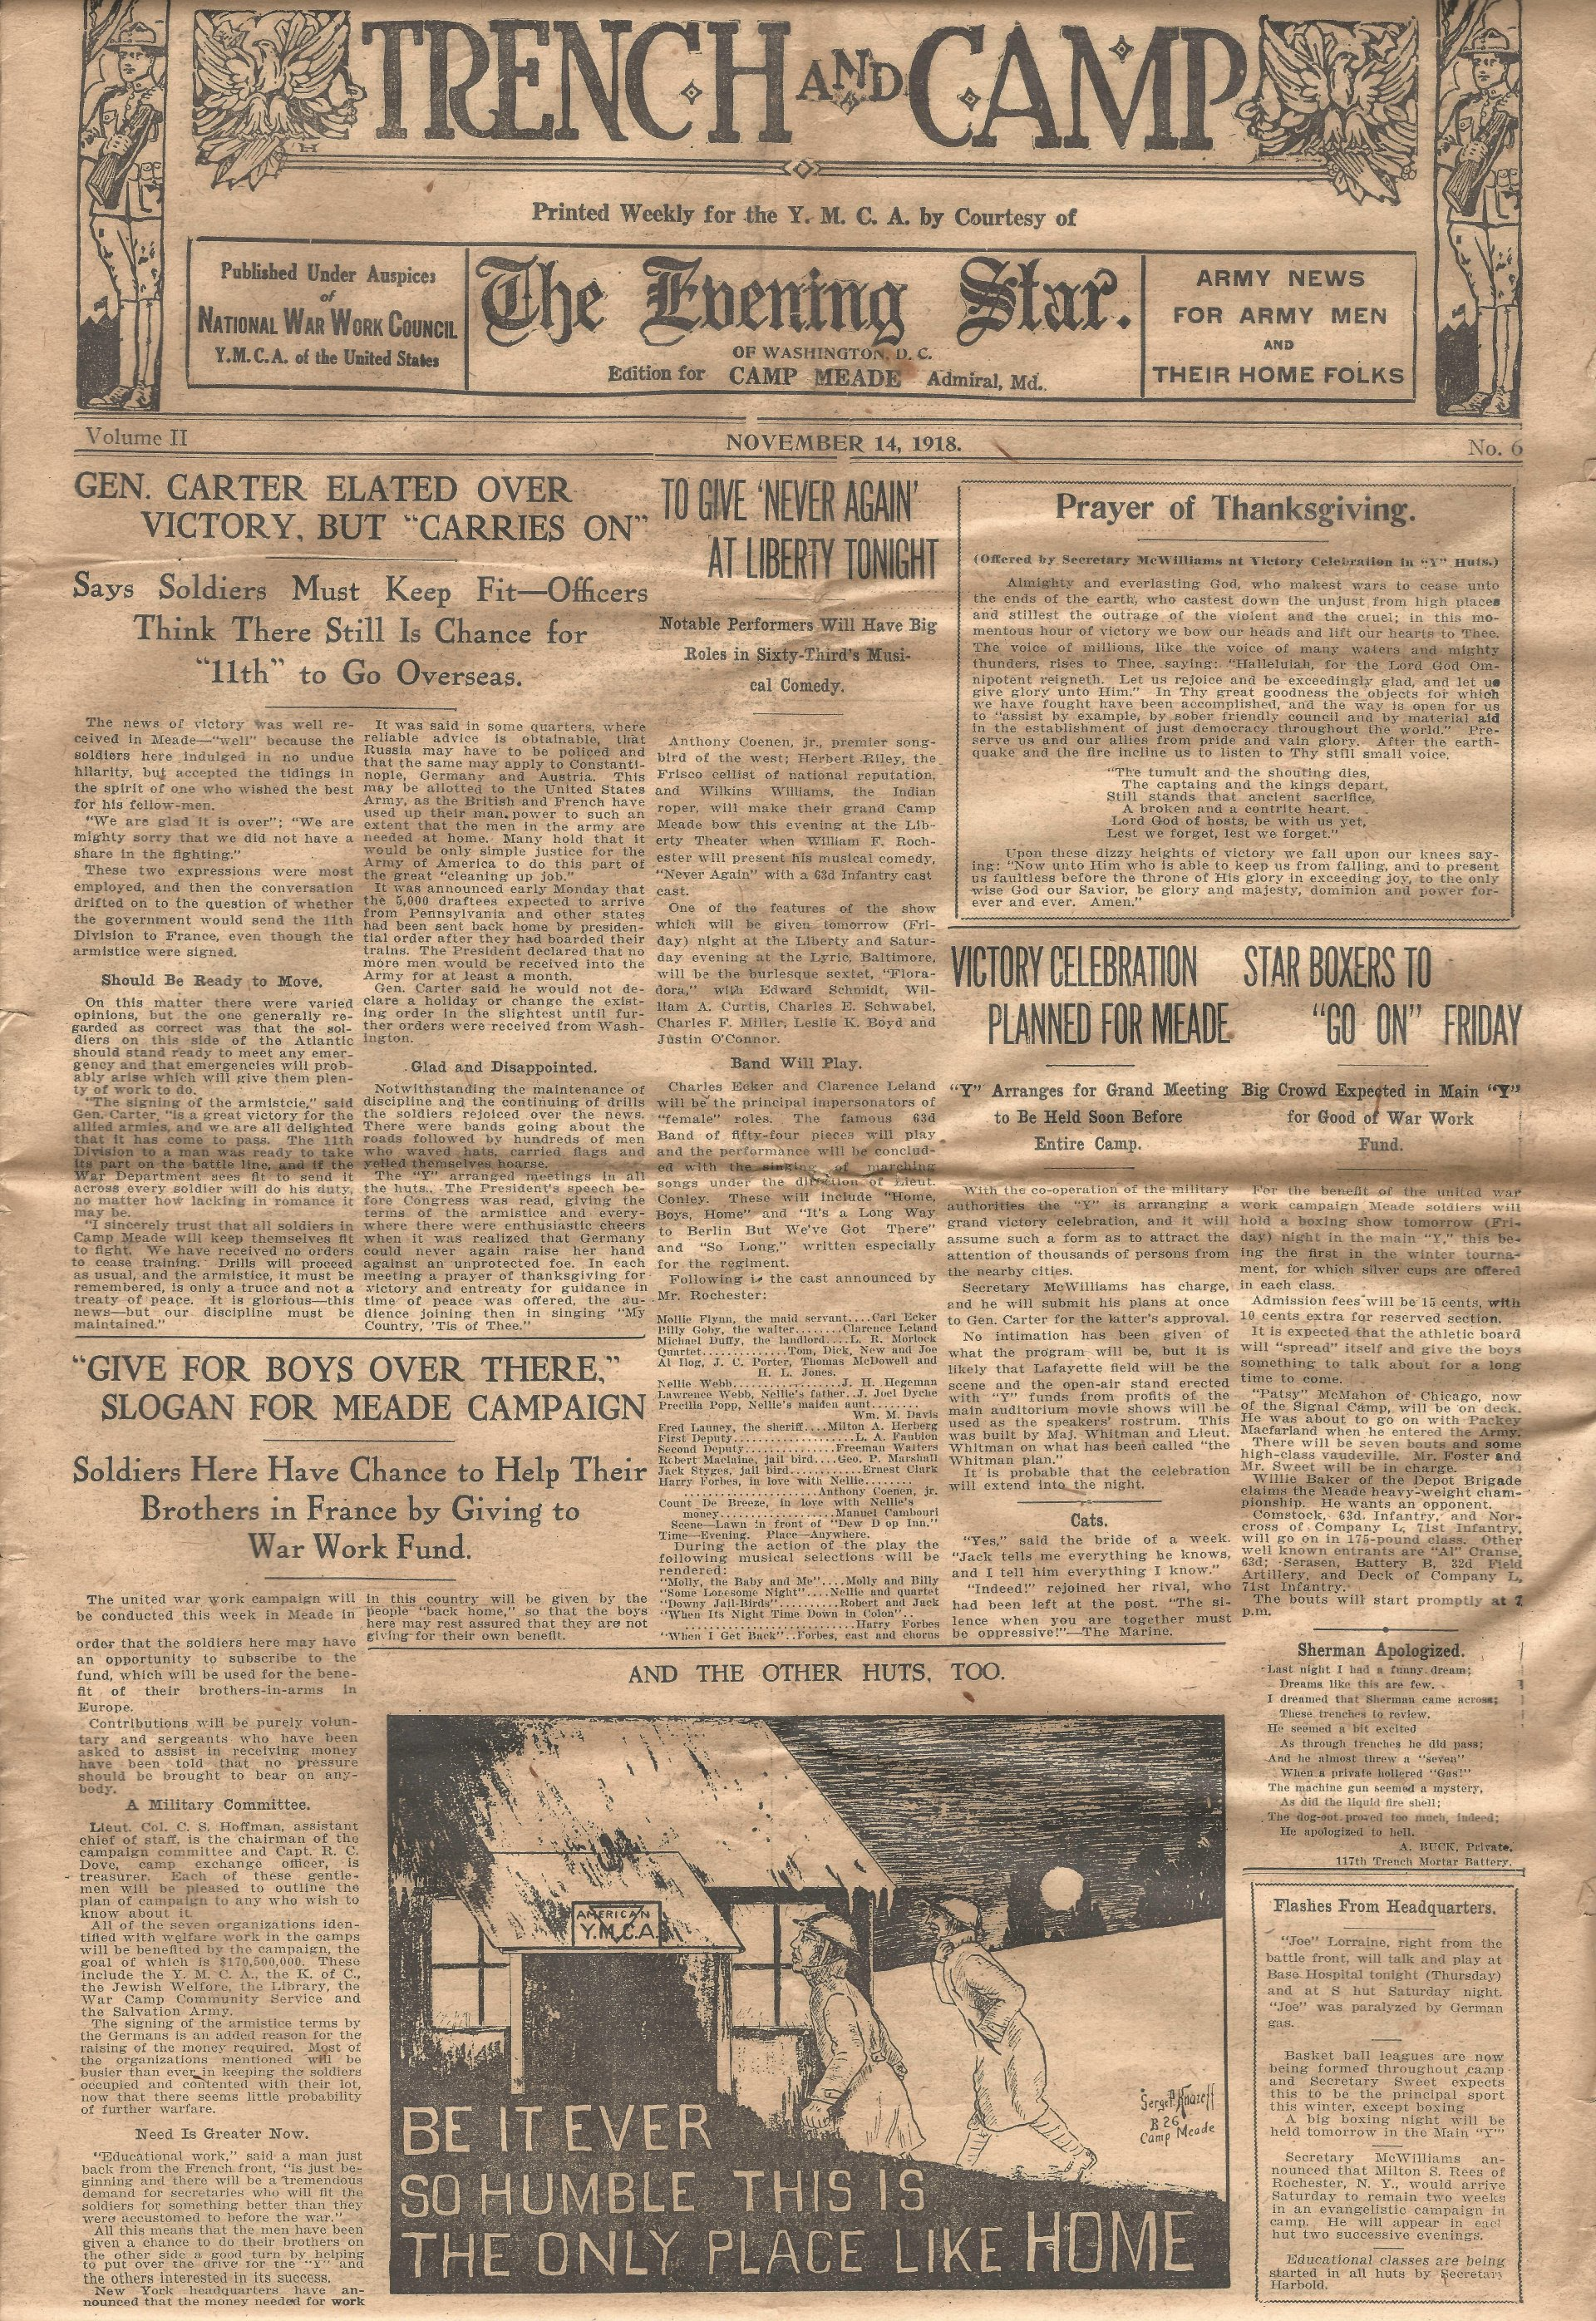 Trench and Camp Newspaper November 14 1918 Page 1